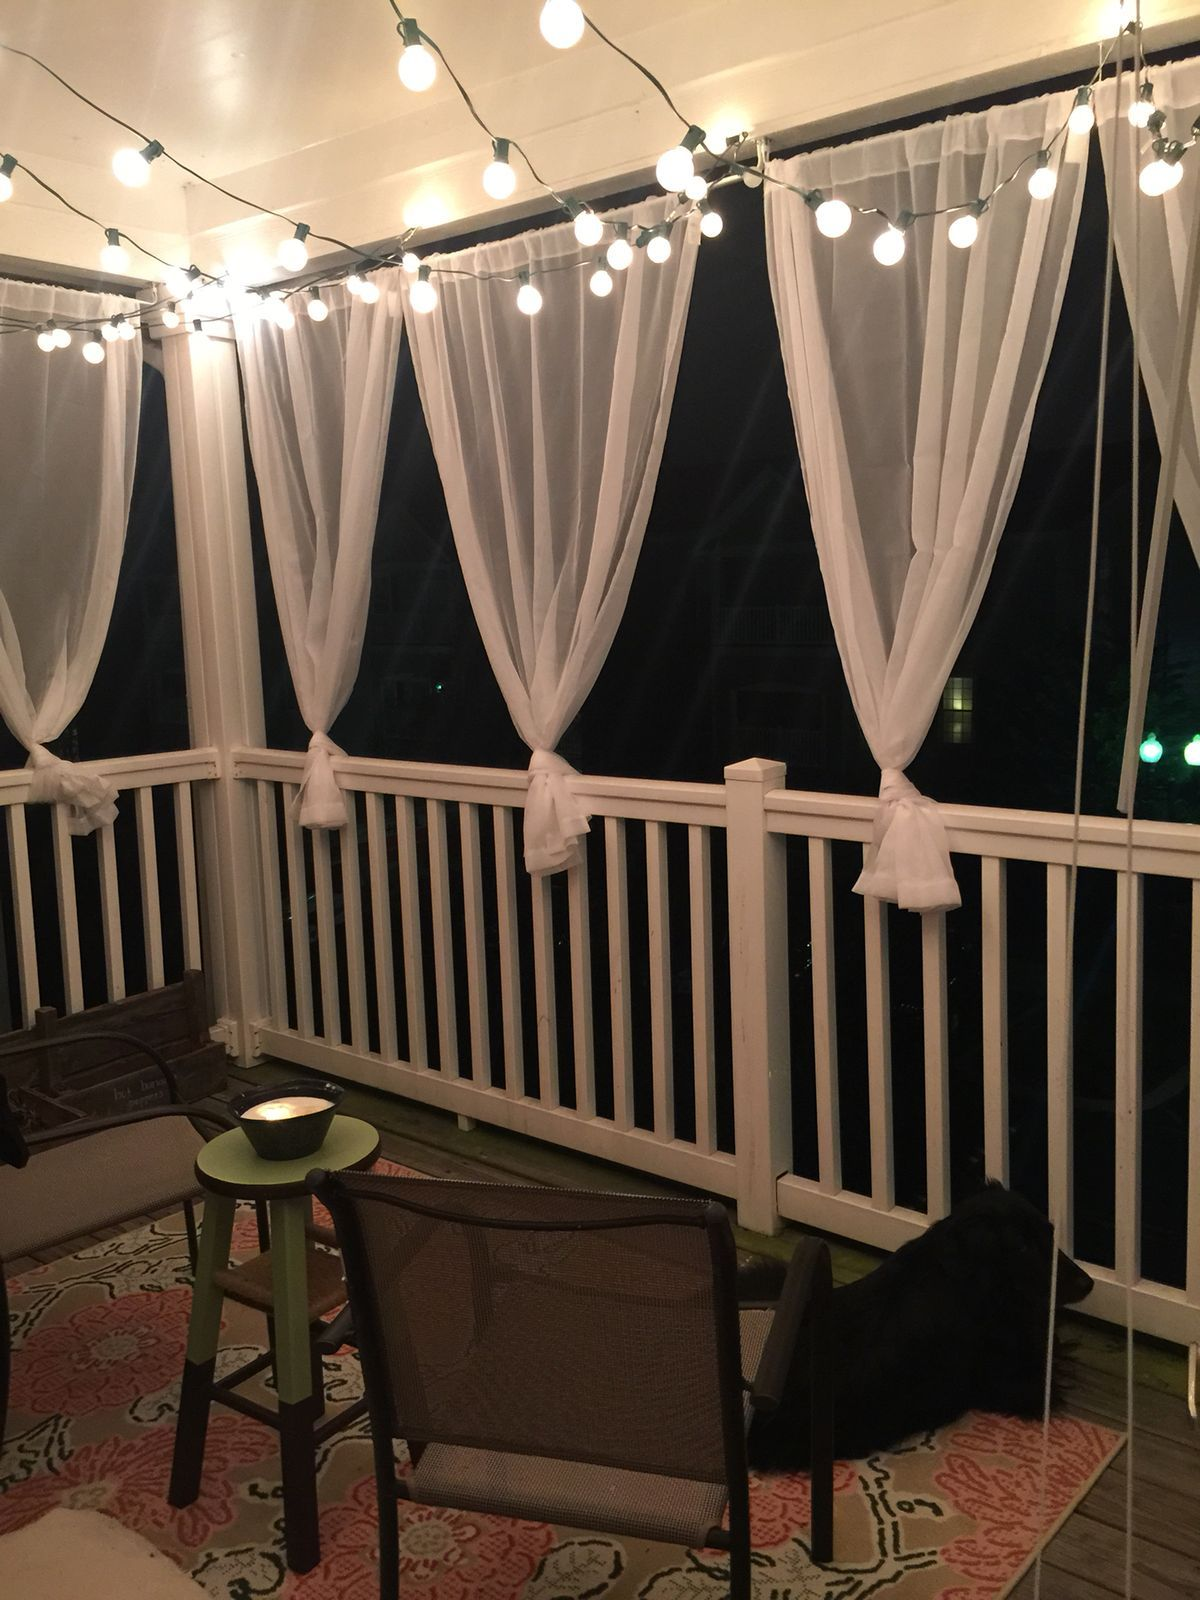 Curtain For Balcony: Pin By Kim Jones On Gazebo Decor